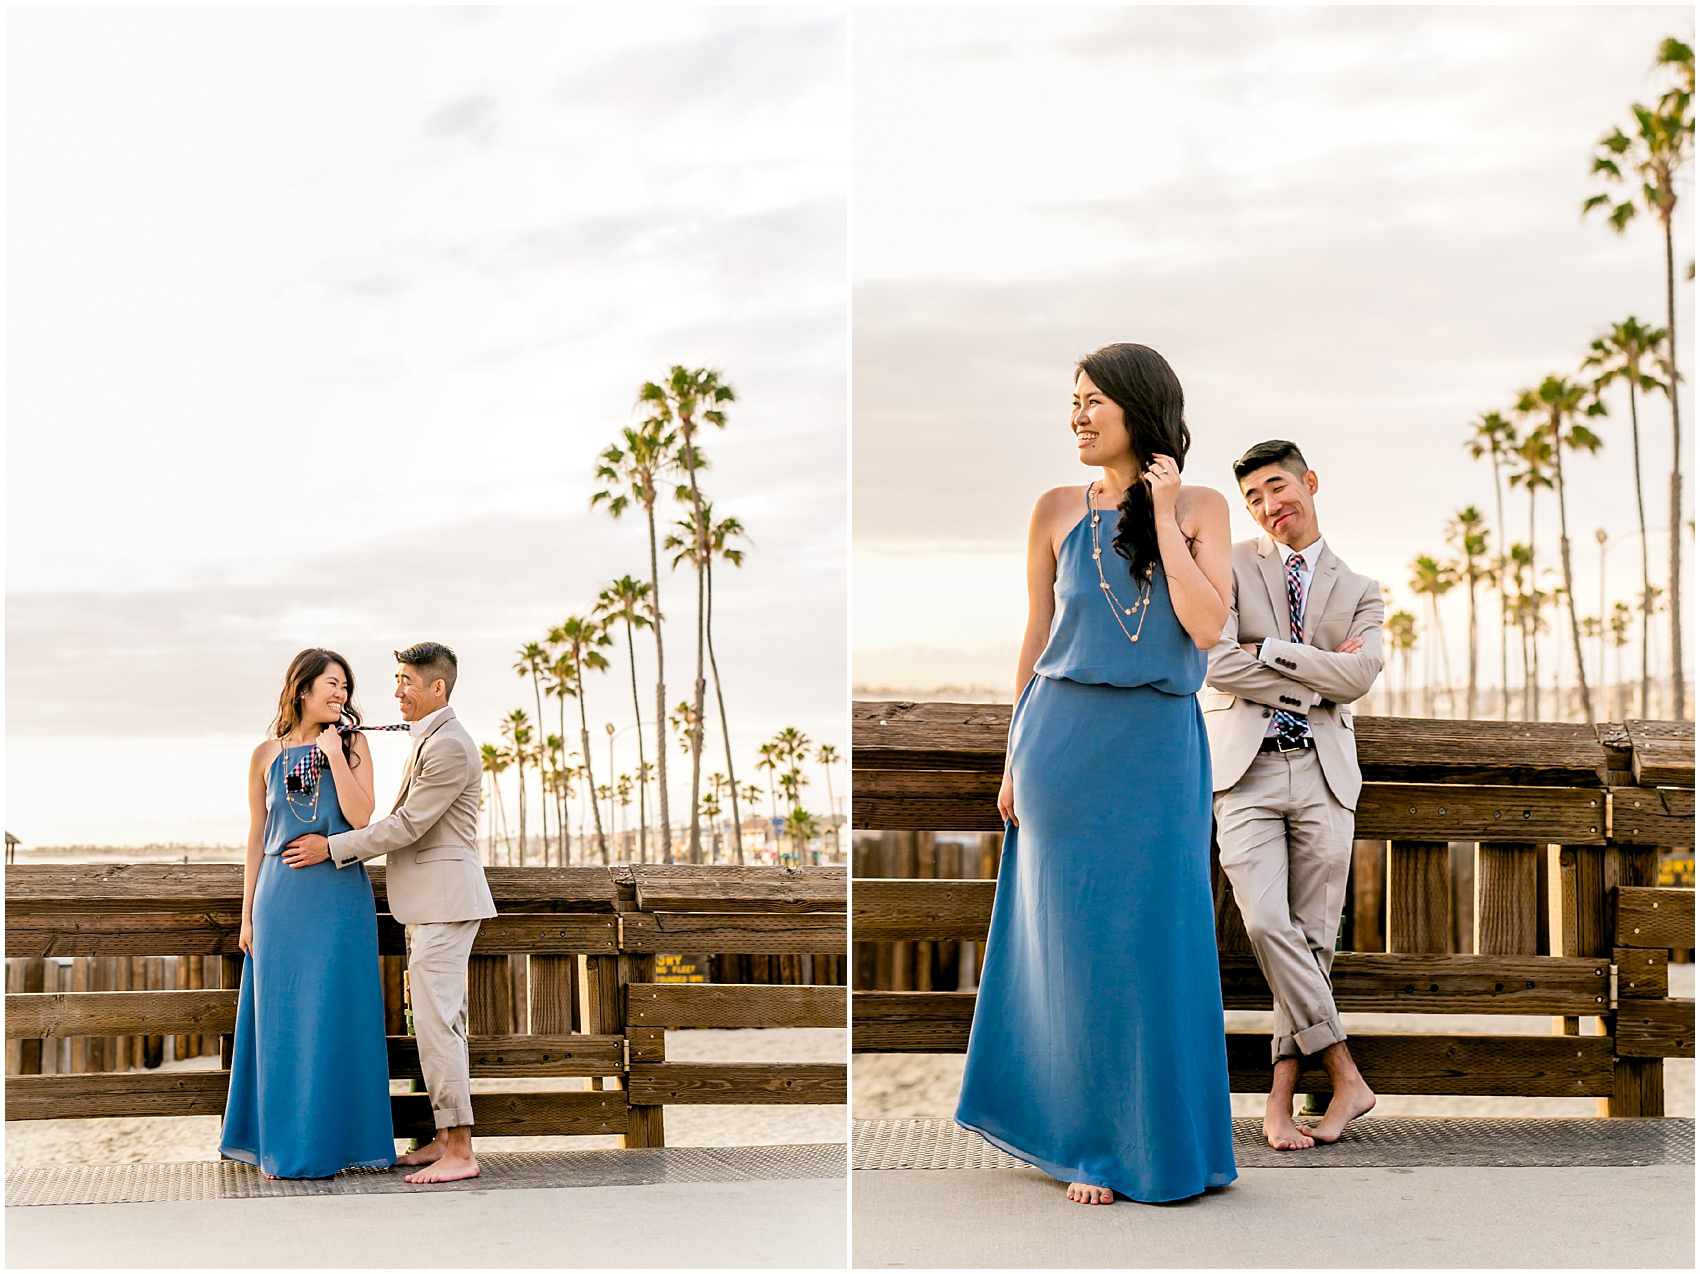 Newport Beach Engagement Photography Smetona Photo Bonnie Tim-0016.jpg